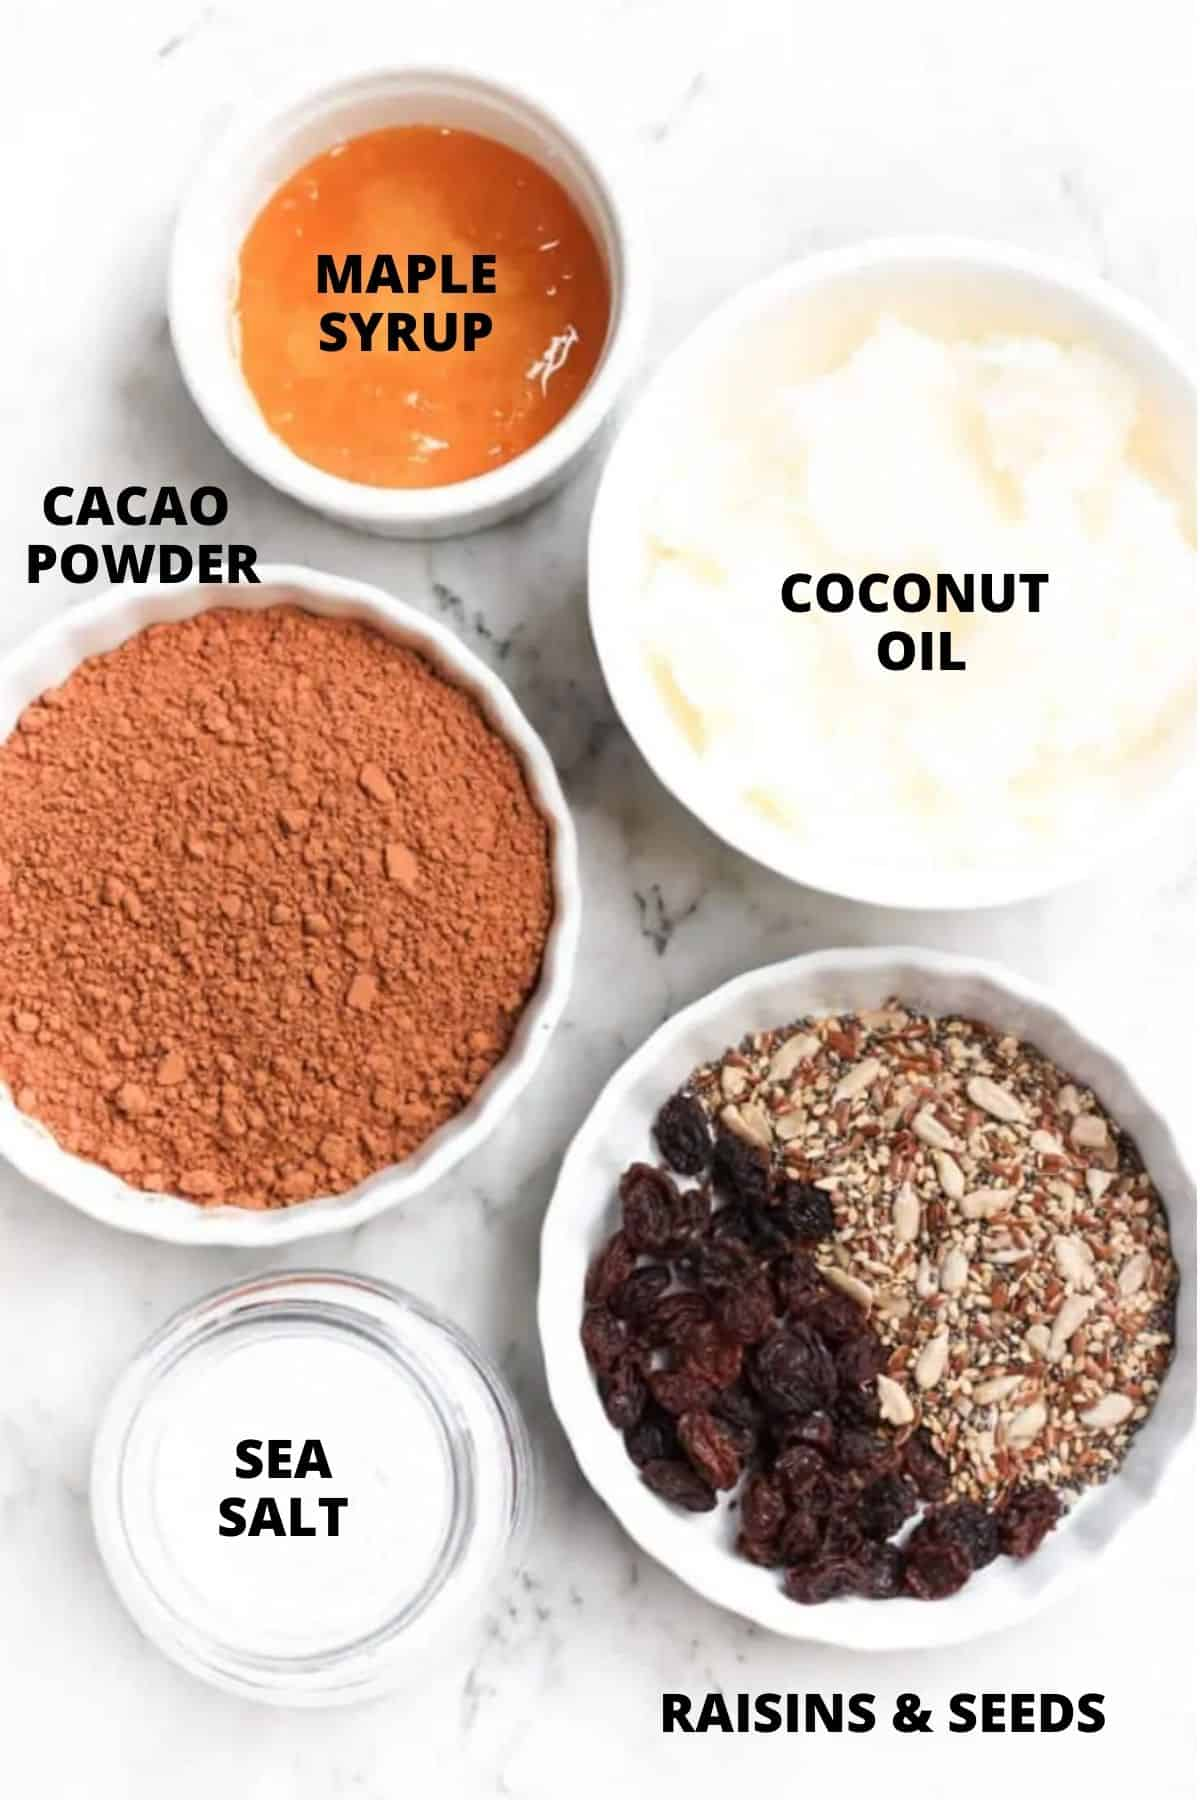 Labeled ingredients for homemade chocolate on marble board.